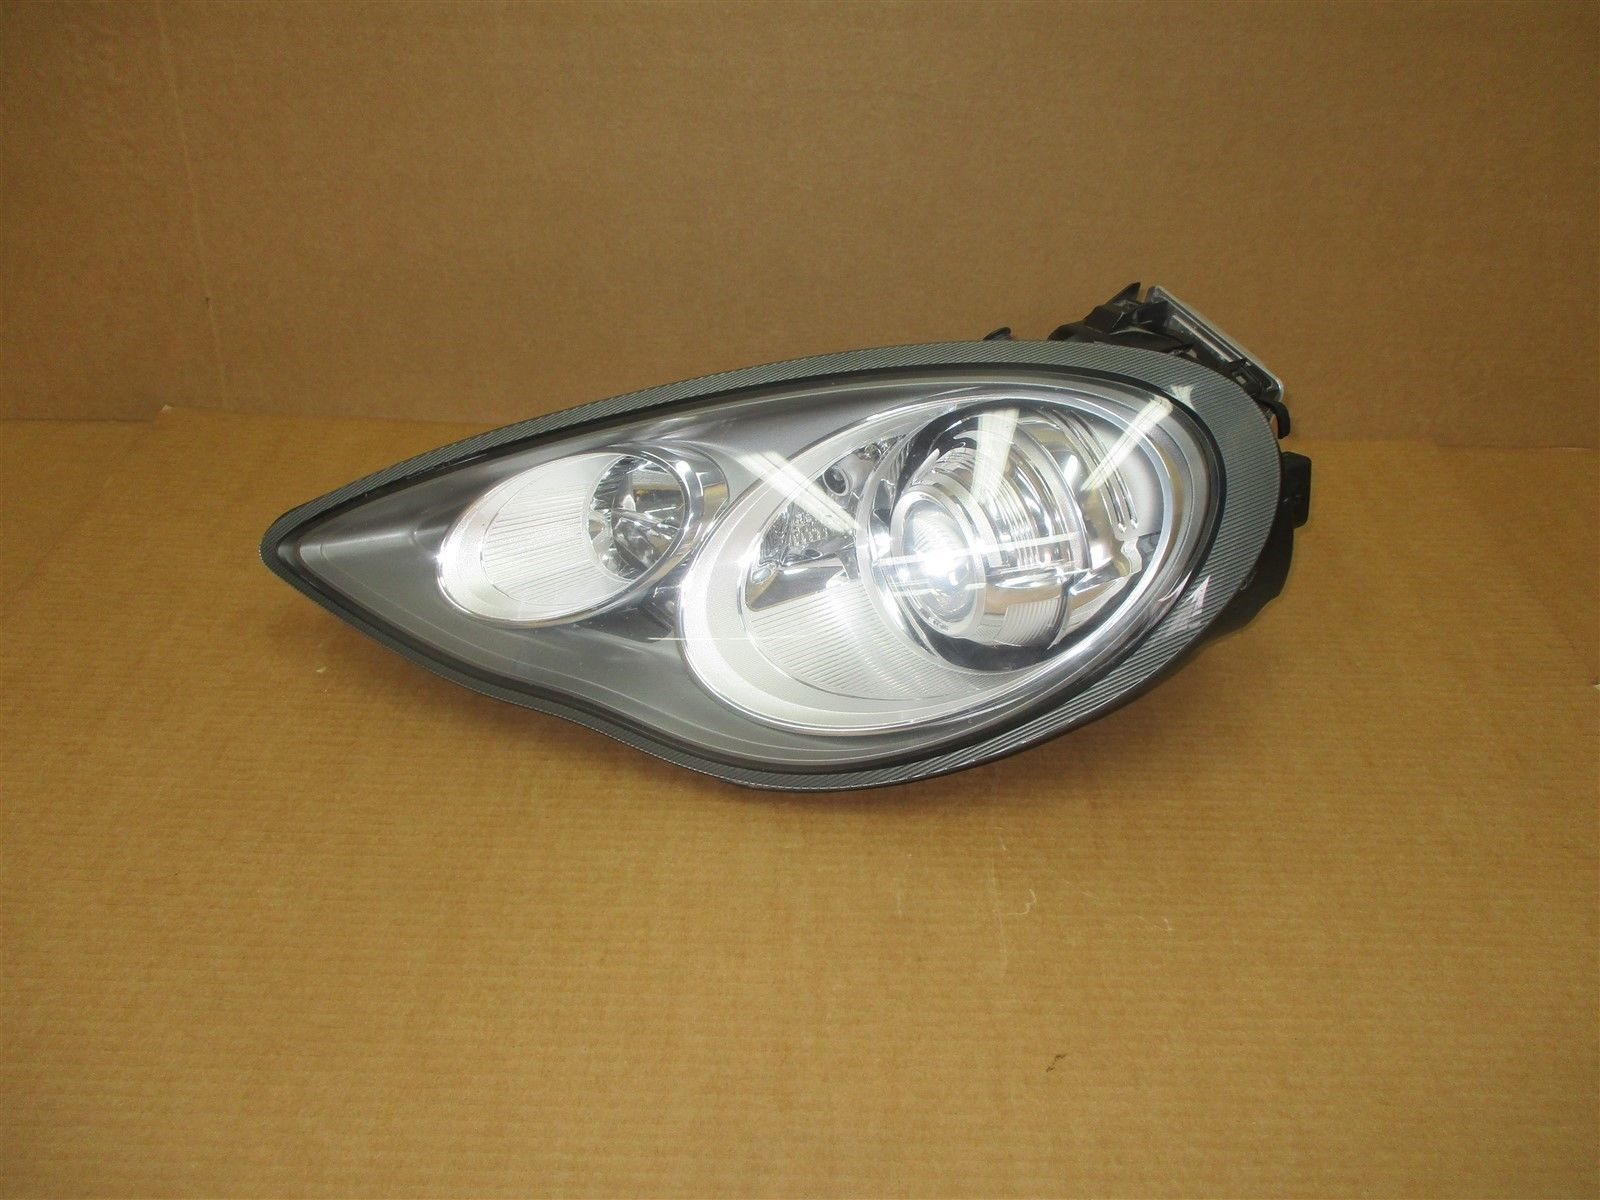 11 Panamera 4S AWD 970 Porsche L XENON HEADLIGHT 97063106925 HEAD LIGHT 92,629